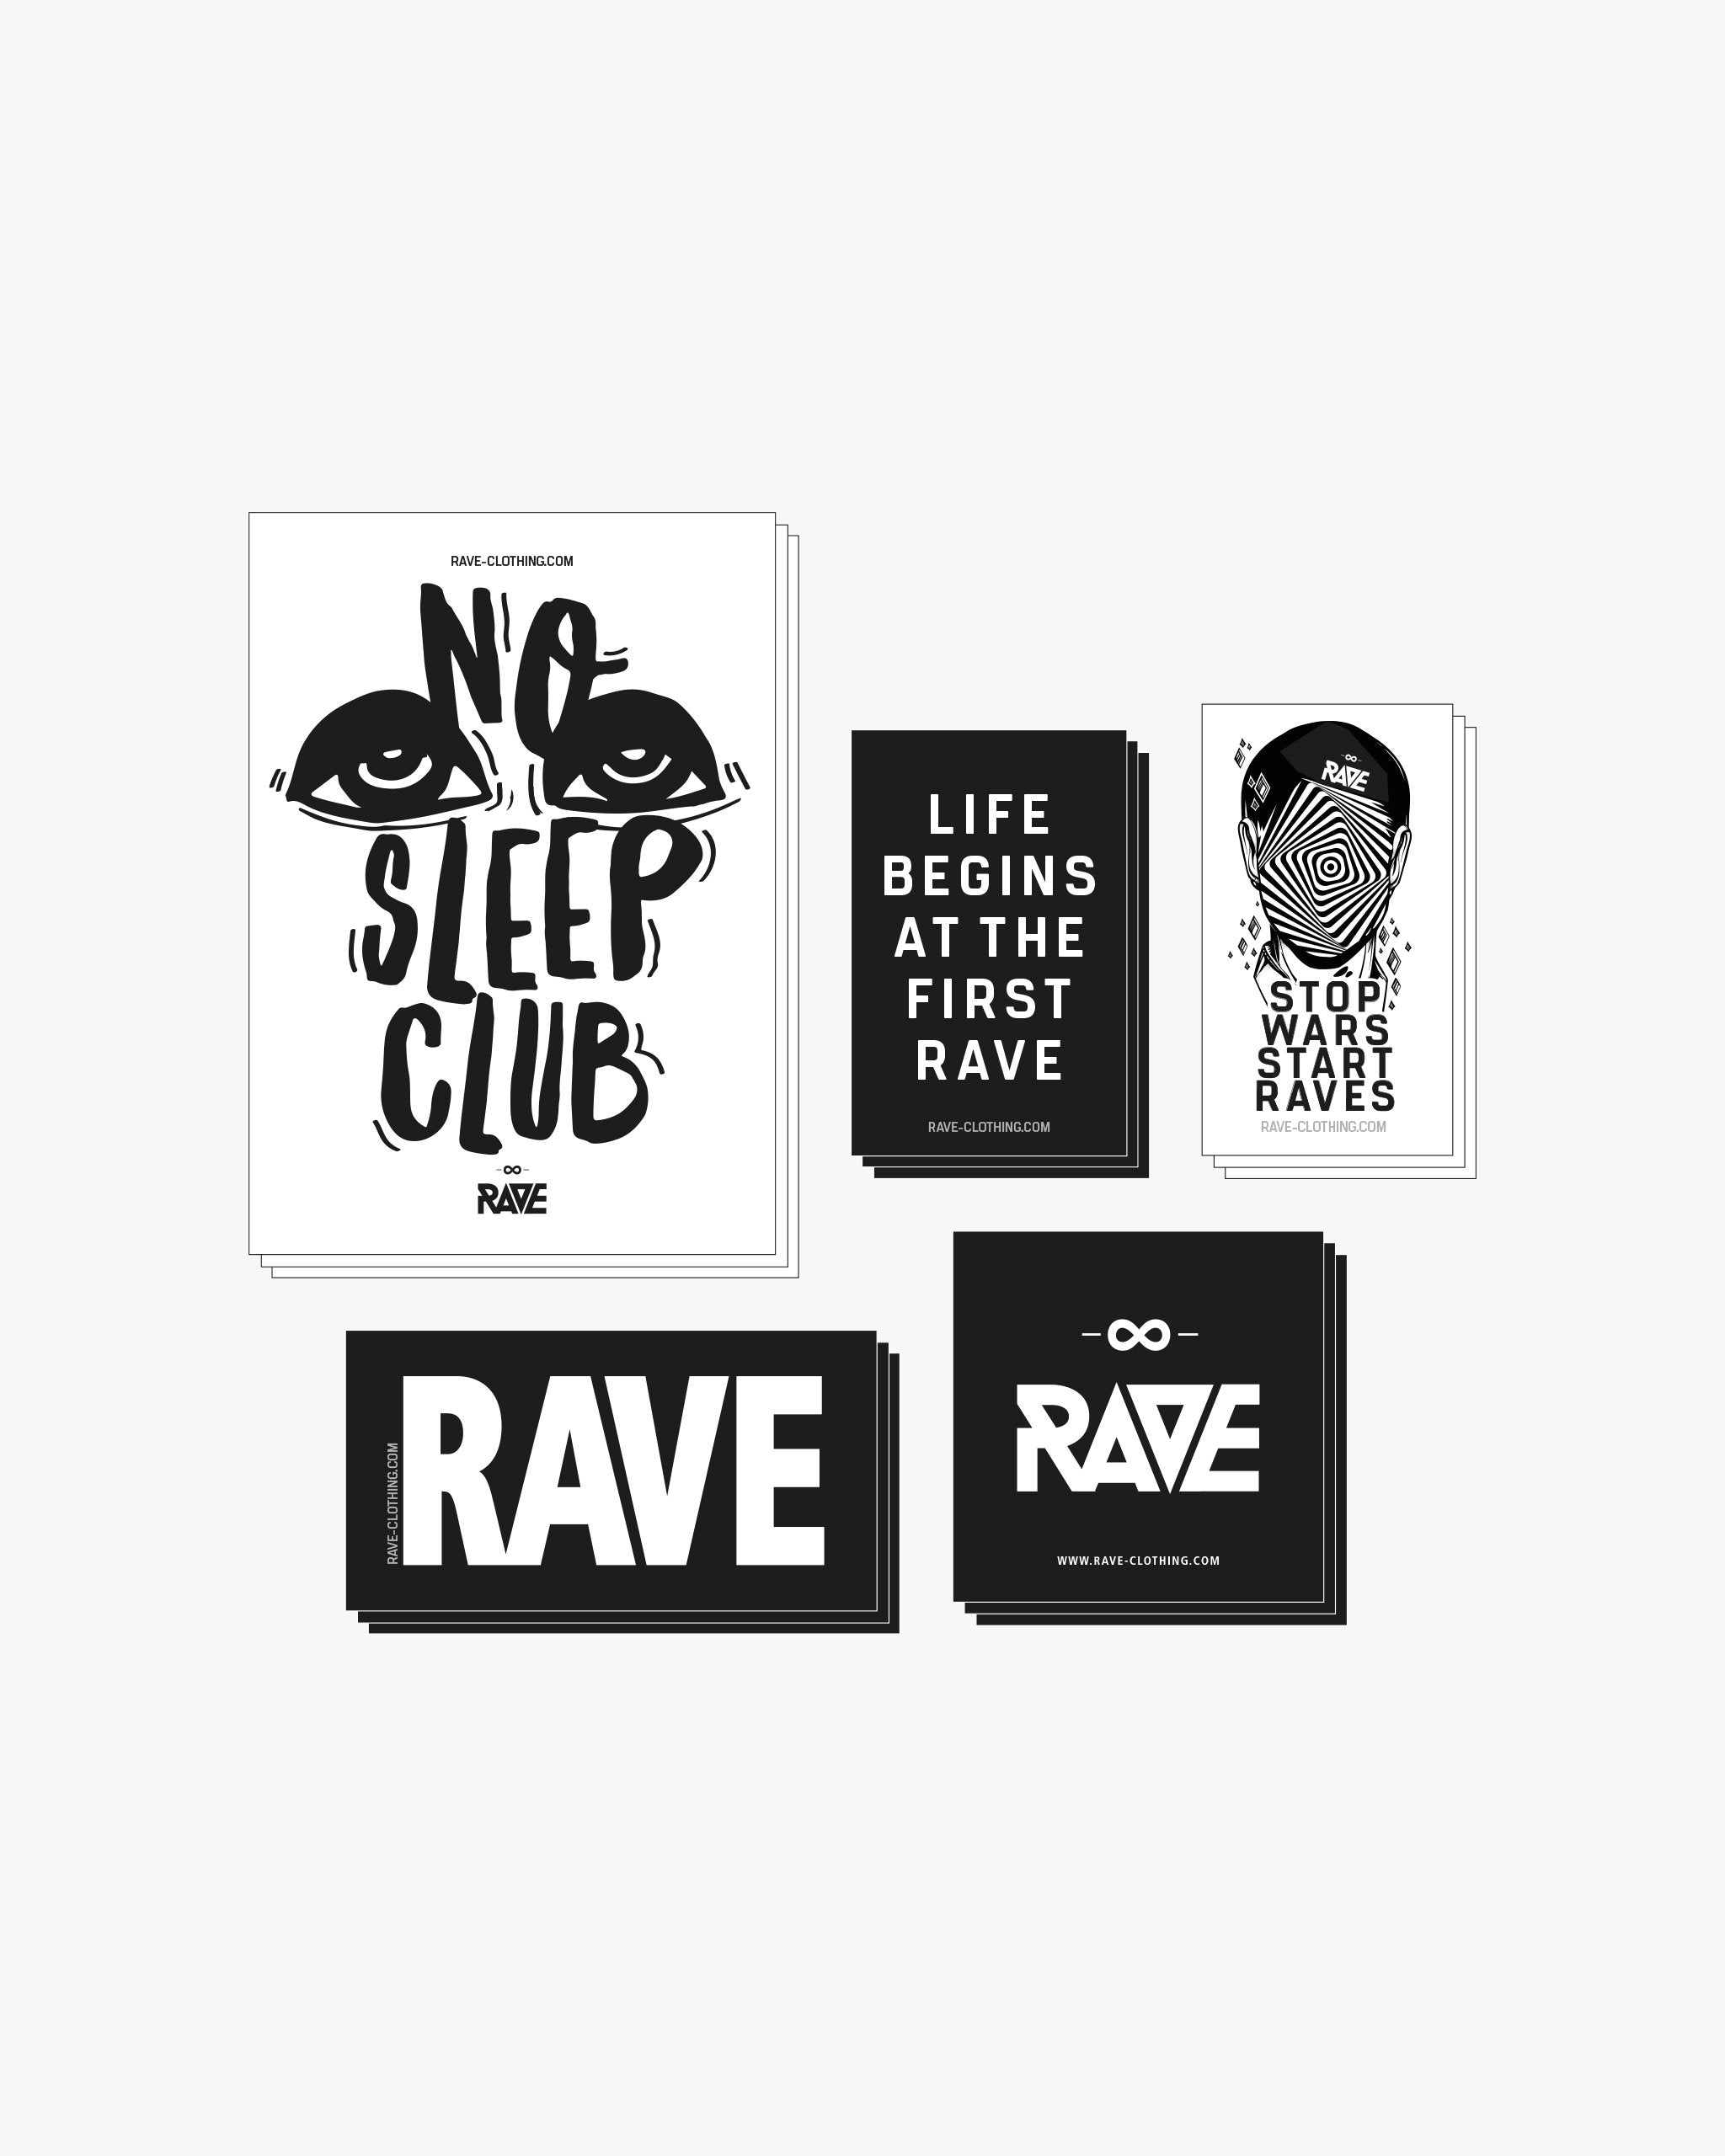 Rave sticker set by RAVE Clothing with different techno stickers. Among other things with Life begins at the first Rave, No Sleep Club, Rave, Stop Wars Start Raves.